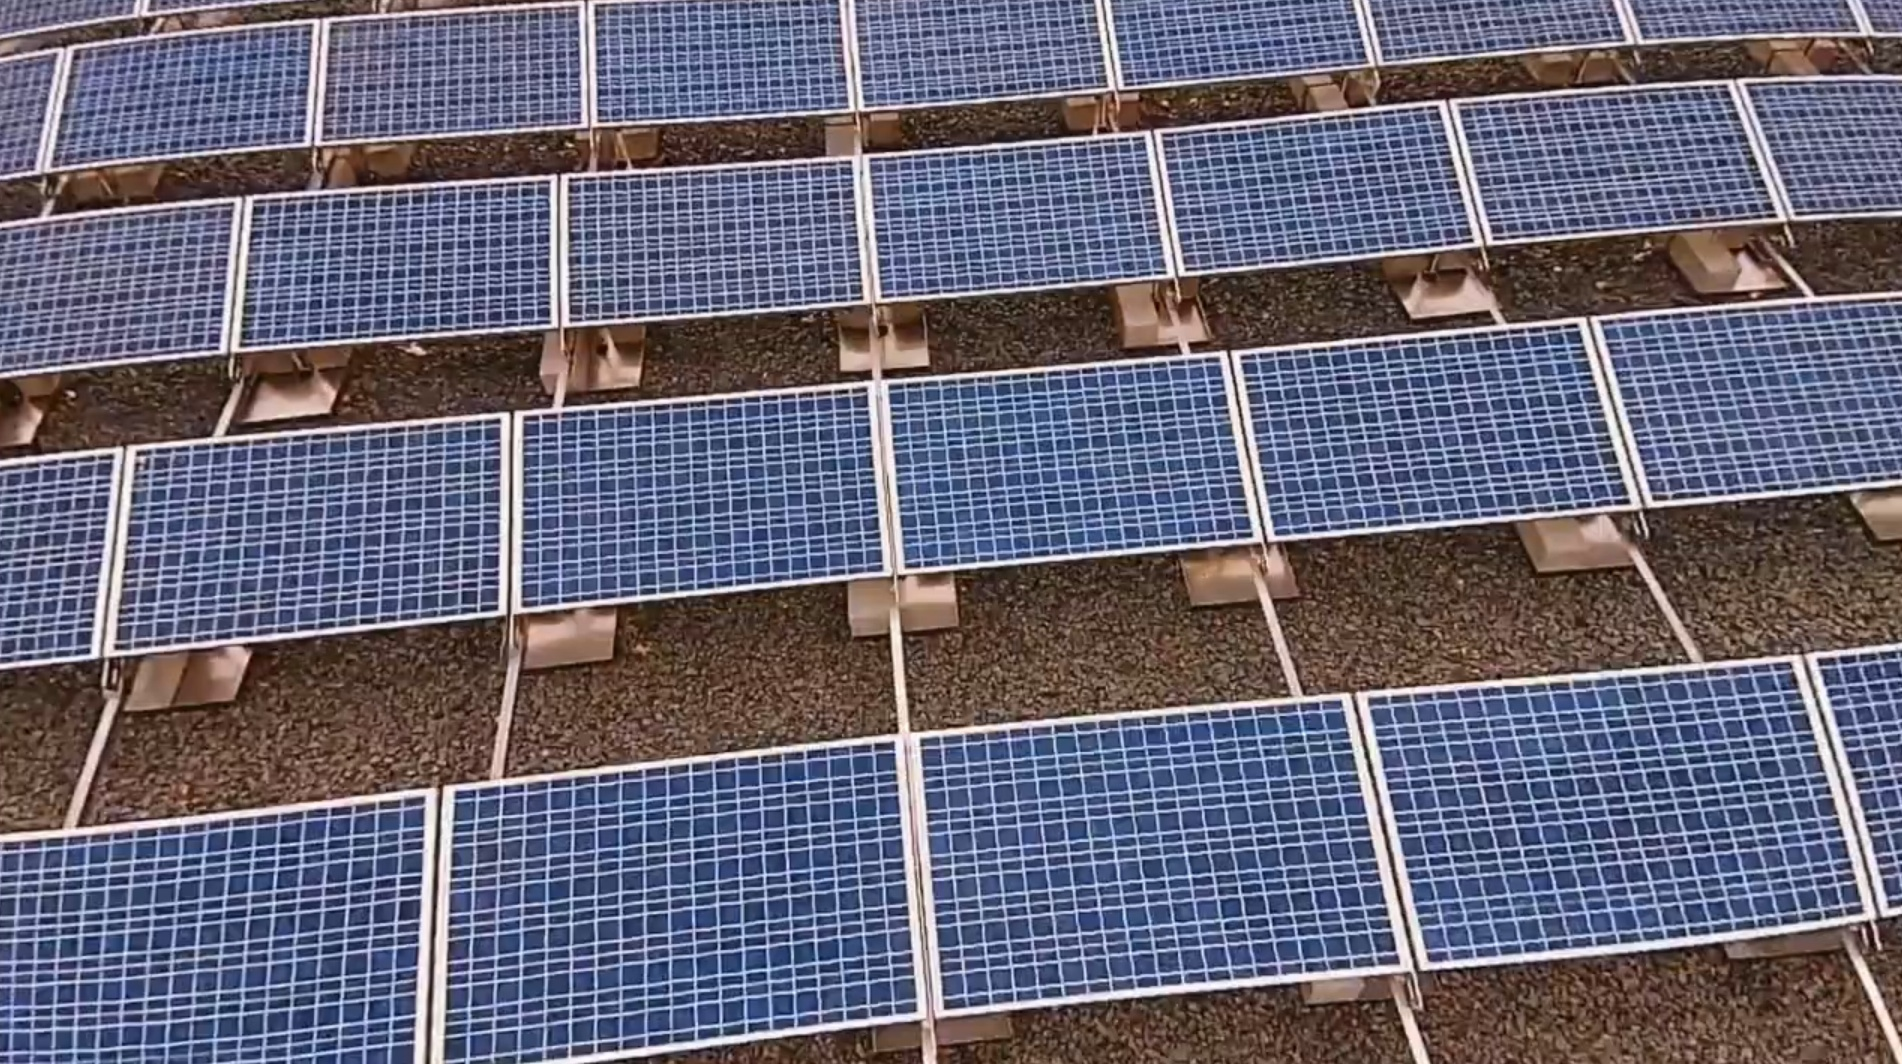 Straight of the drone footage for one of the solar arrays